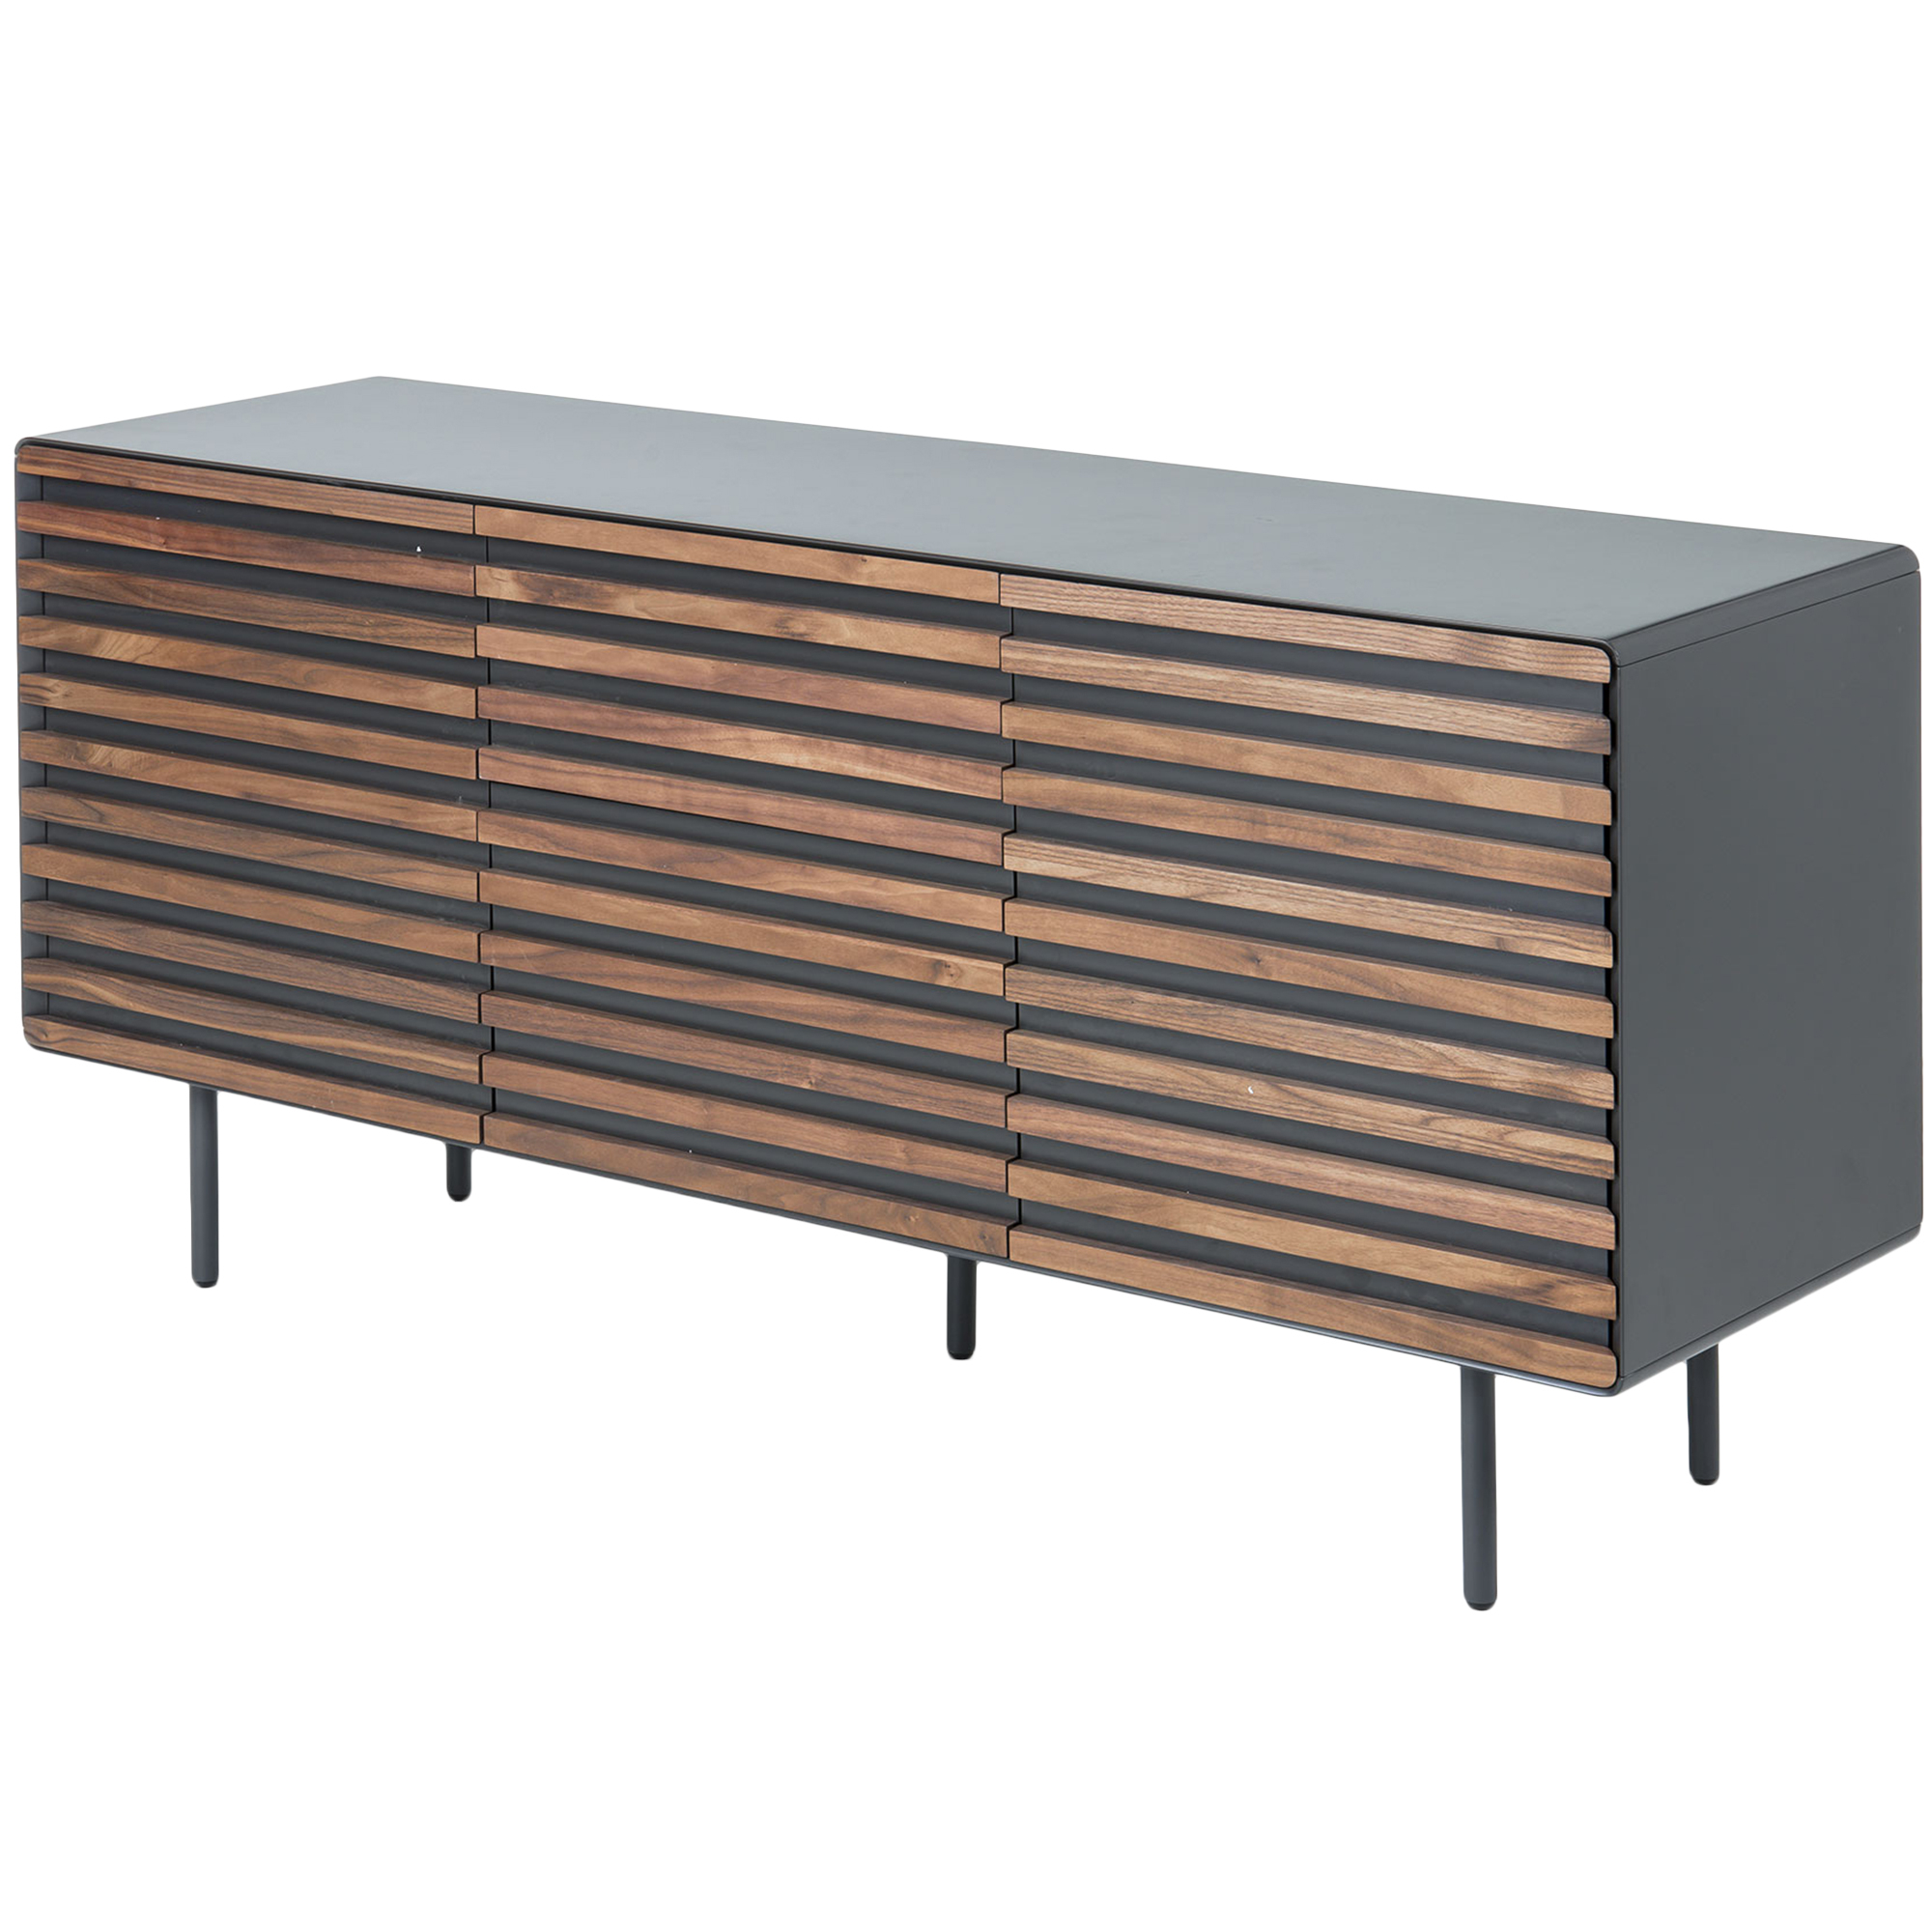 Slatted Ekko Buffet Intended For 2 Shelf Buffets With Curved Legs (View 16 of 20)